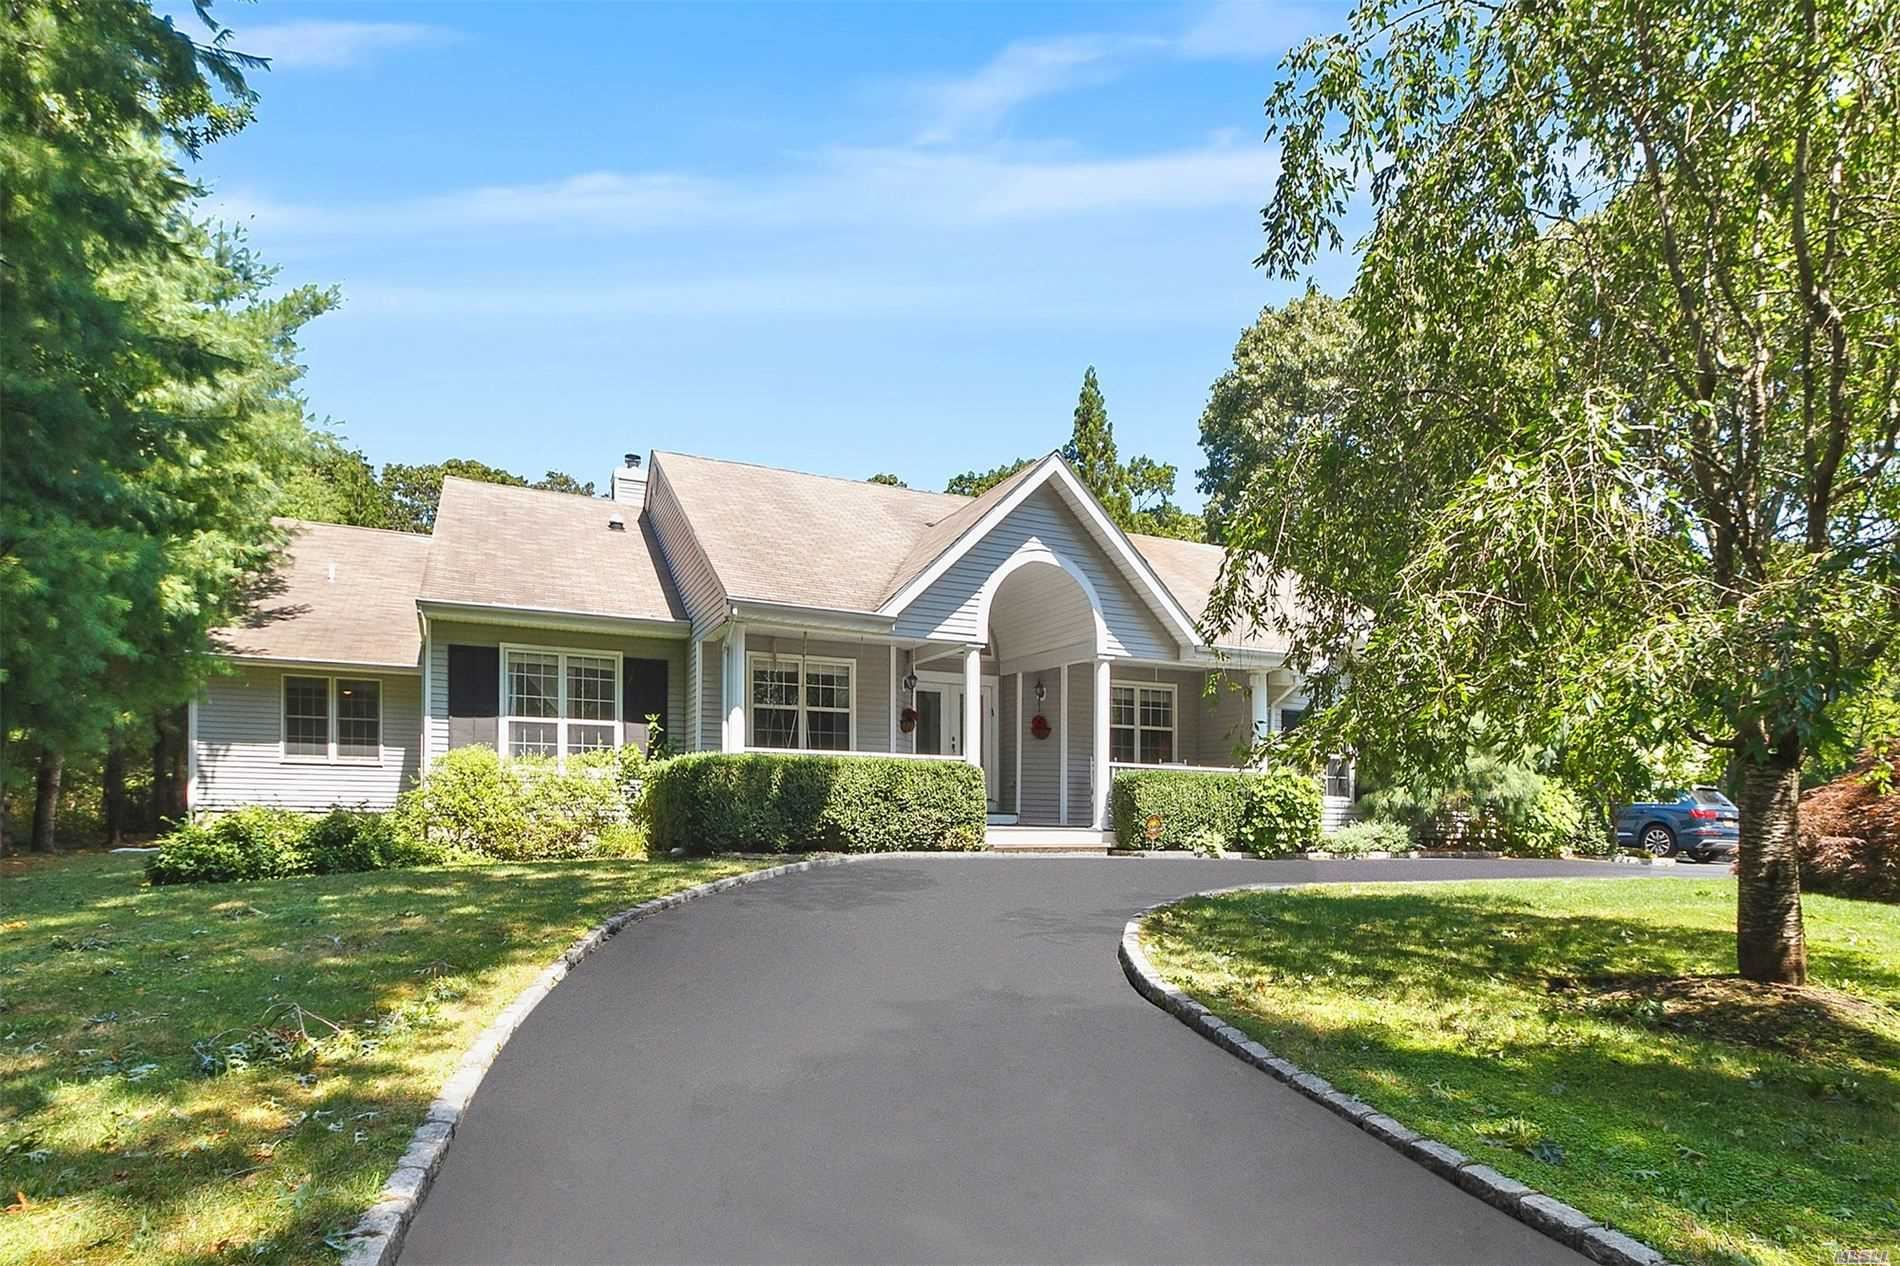 1 Jeffrey Lane, East Quogue, NY 11942 - MLS#: 3238161